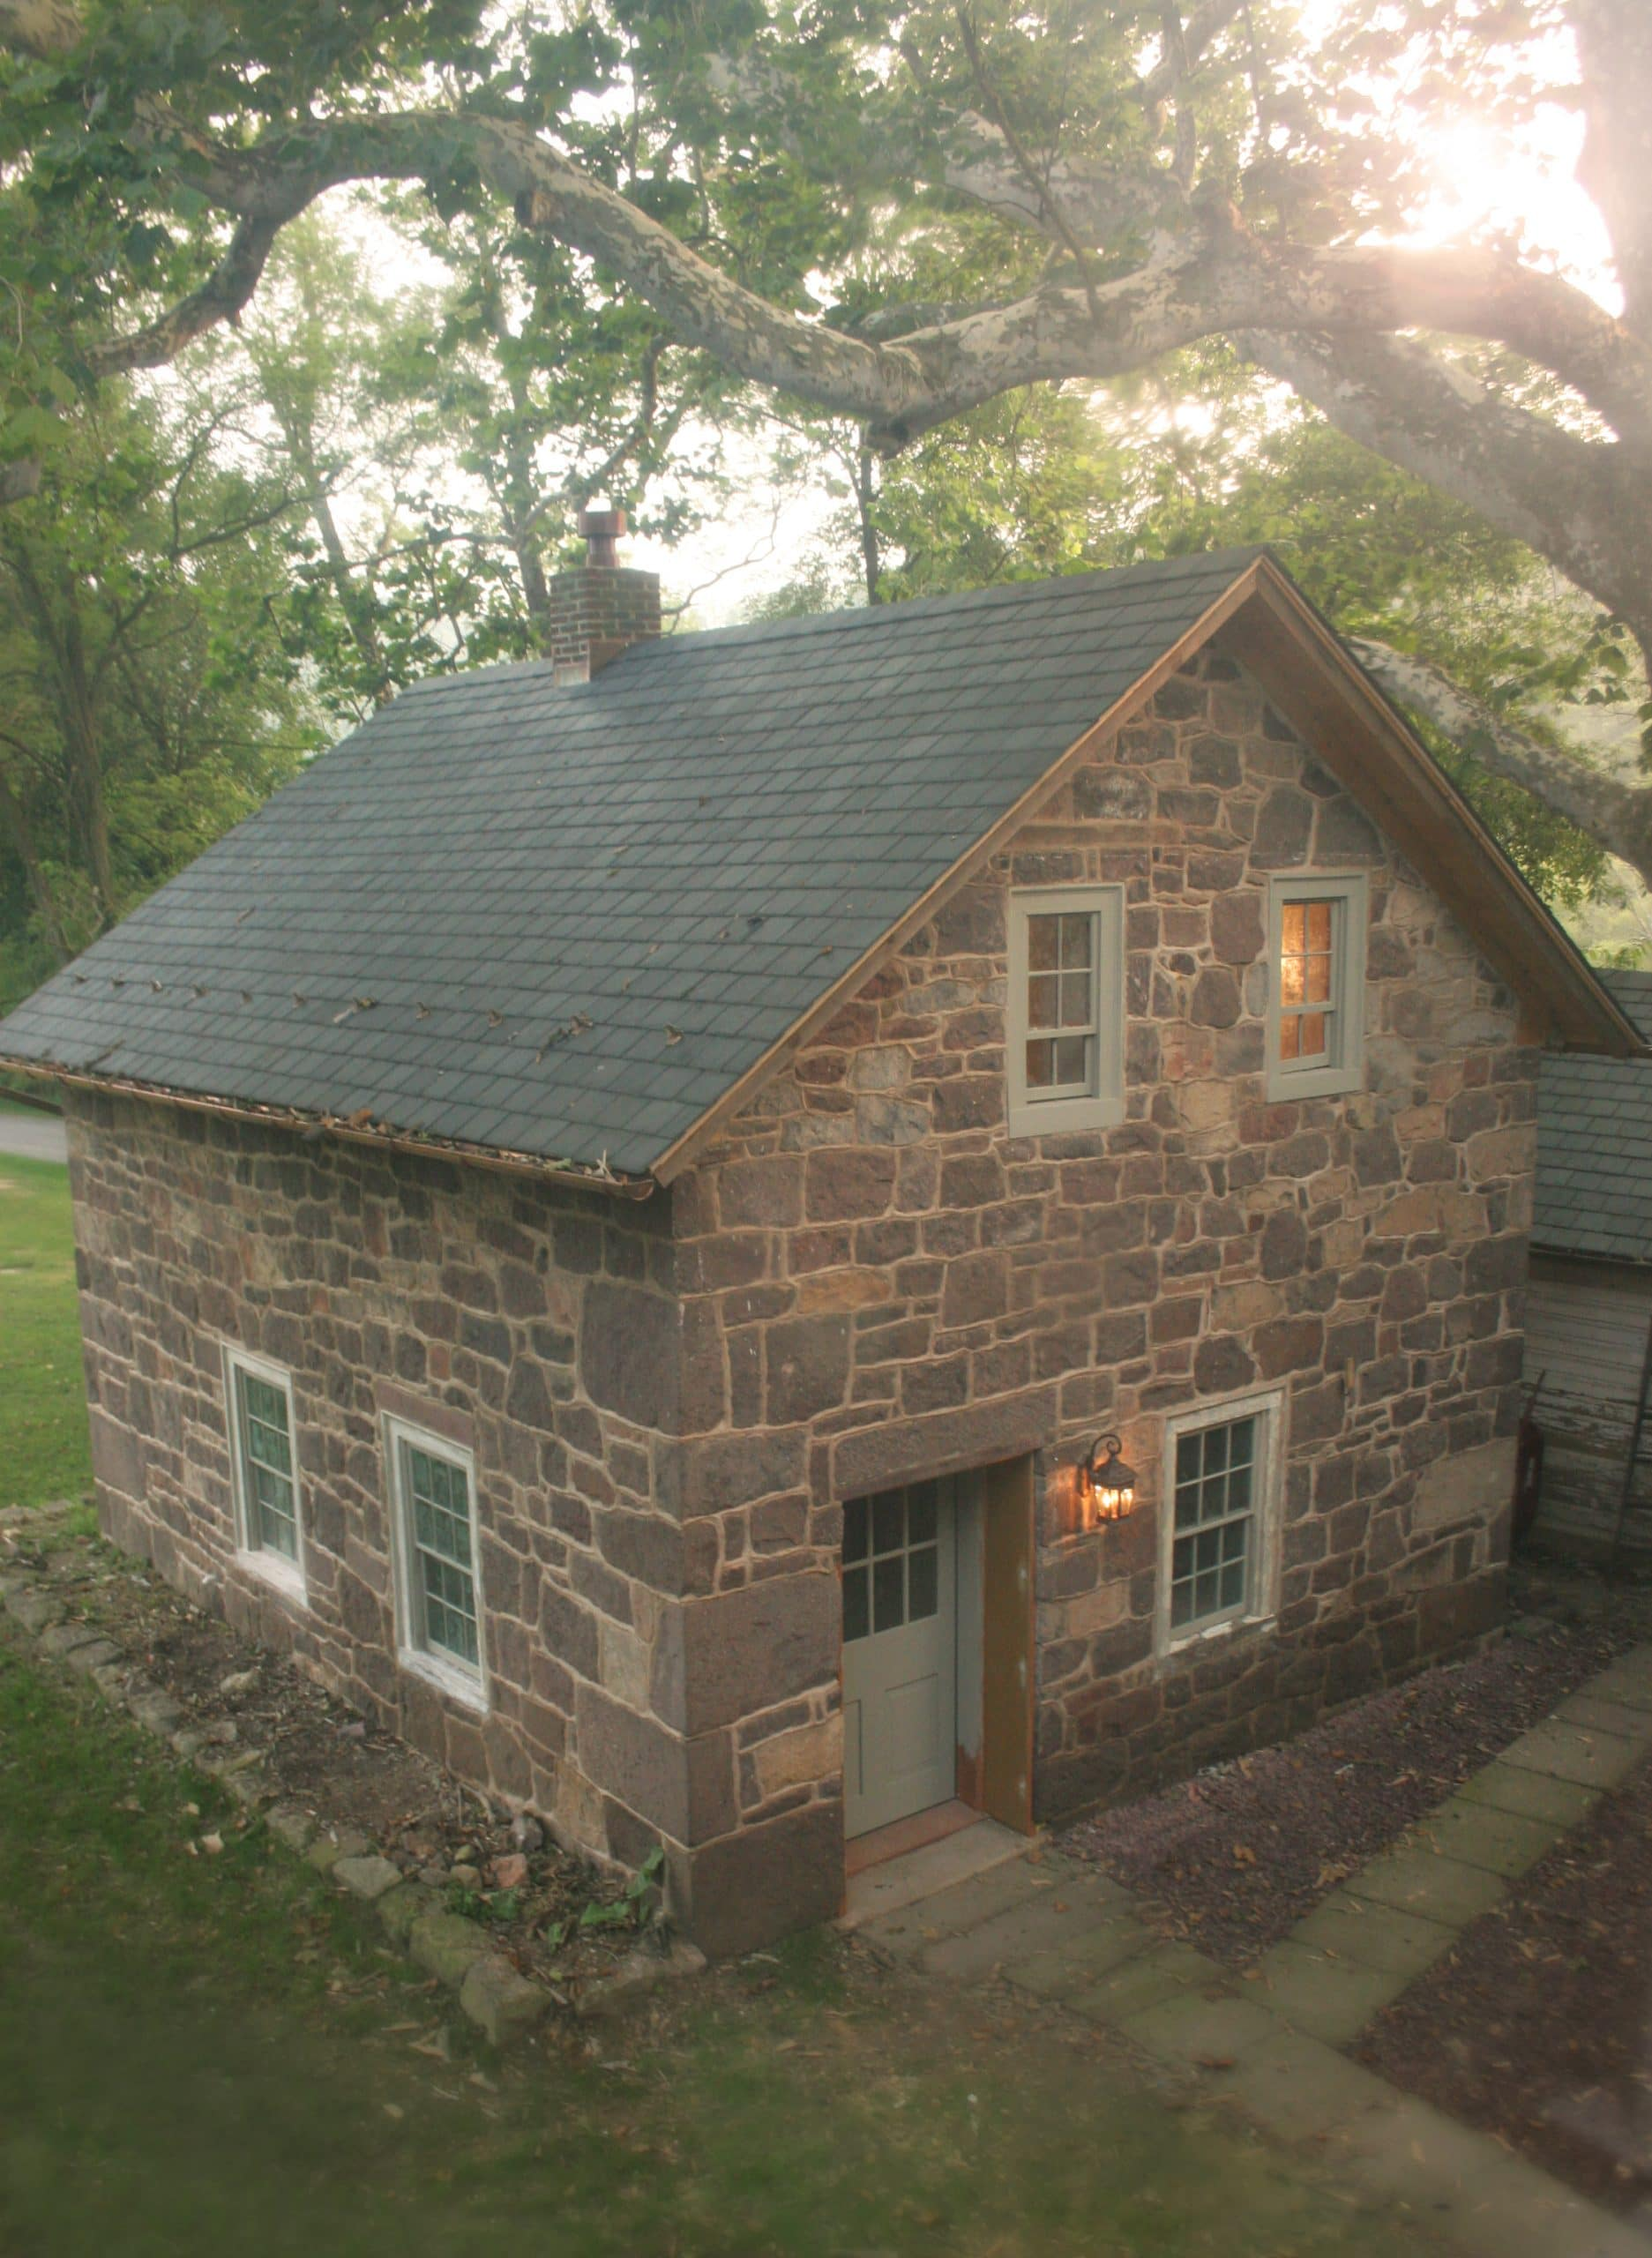 The Summer Kitchen at Speedwell Forge Bed & Breakfast